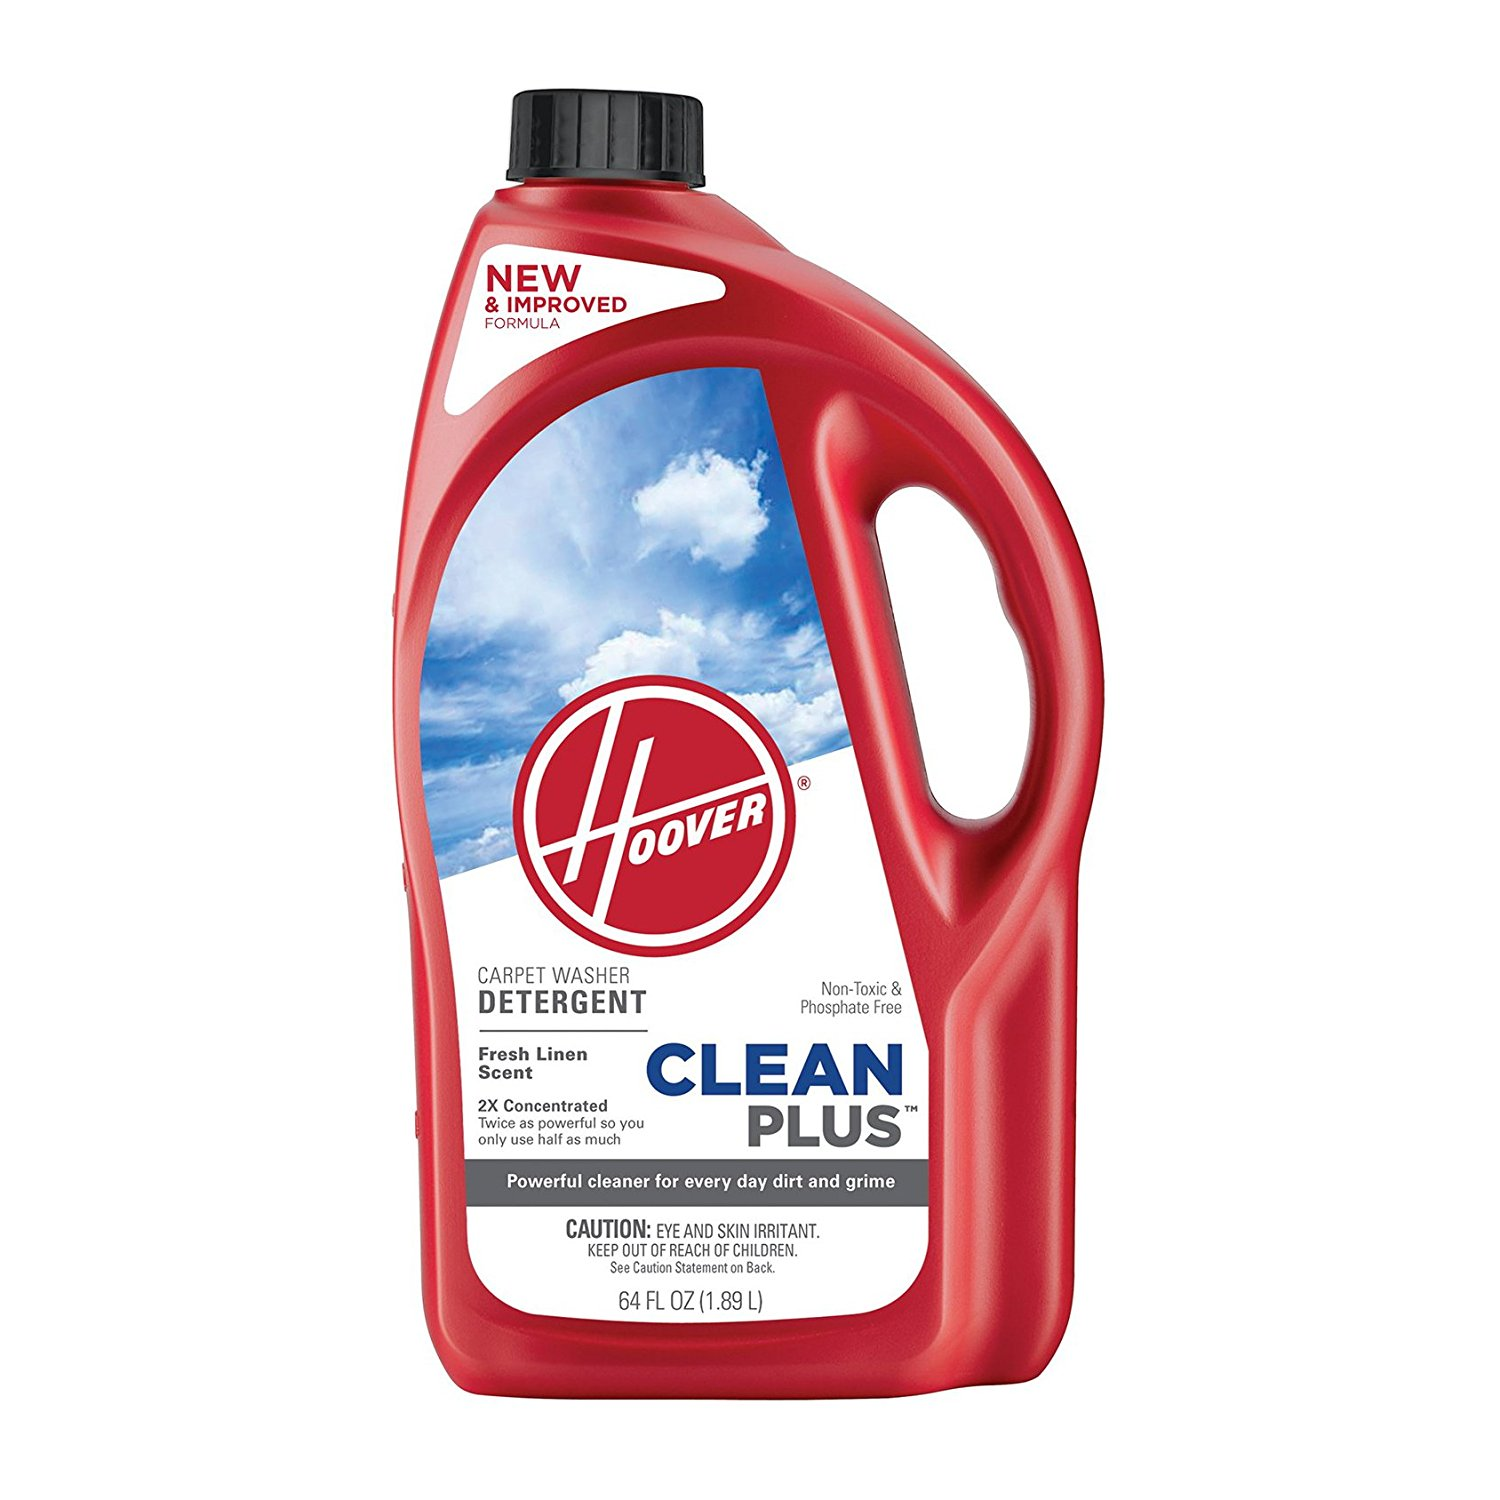 Hoover Cleanplus 2X Concentrated Carpet Cleaner and Deodorizer